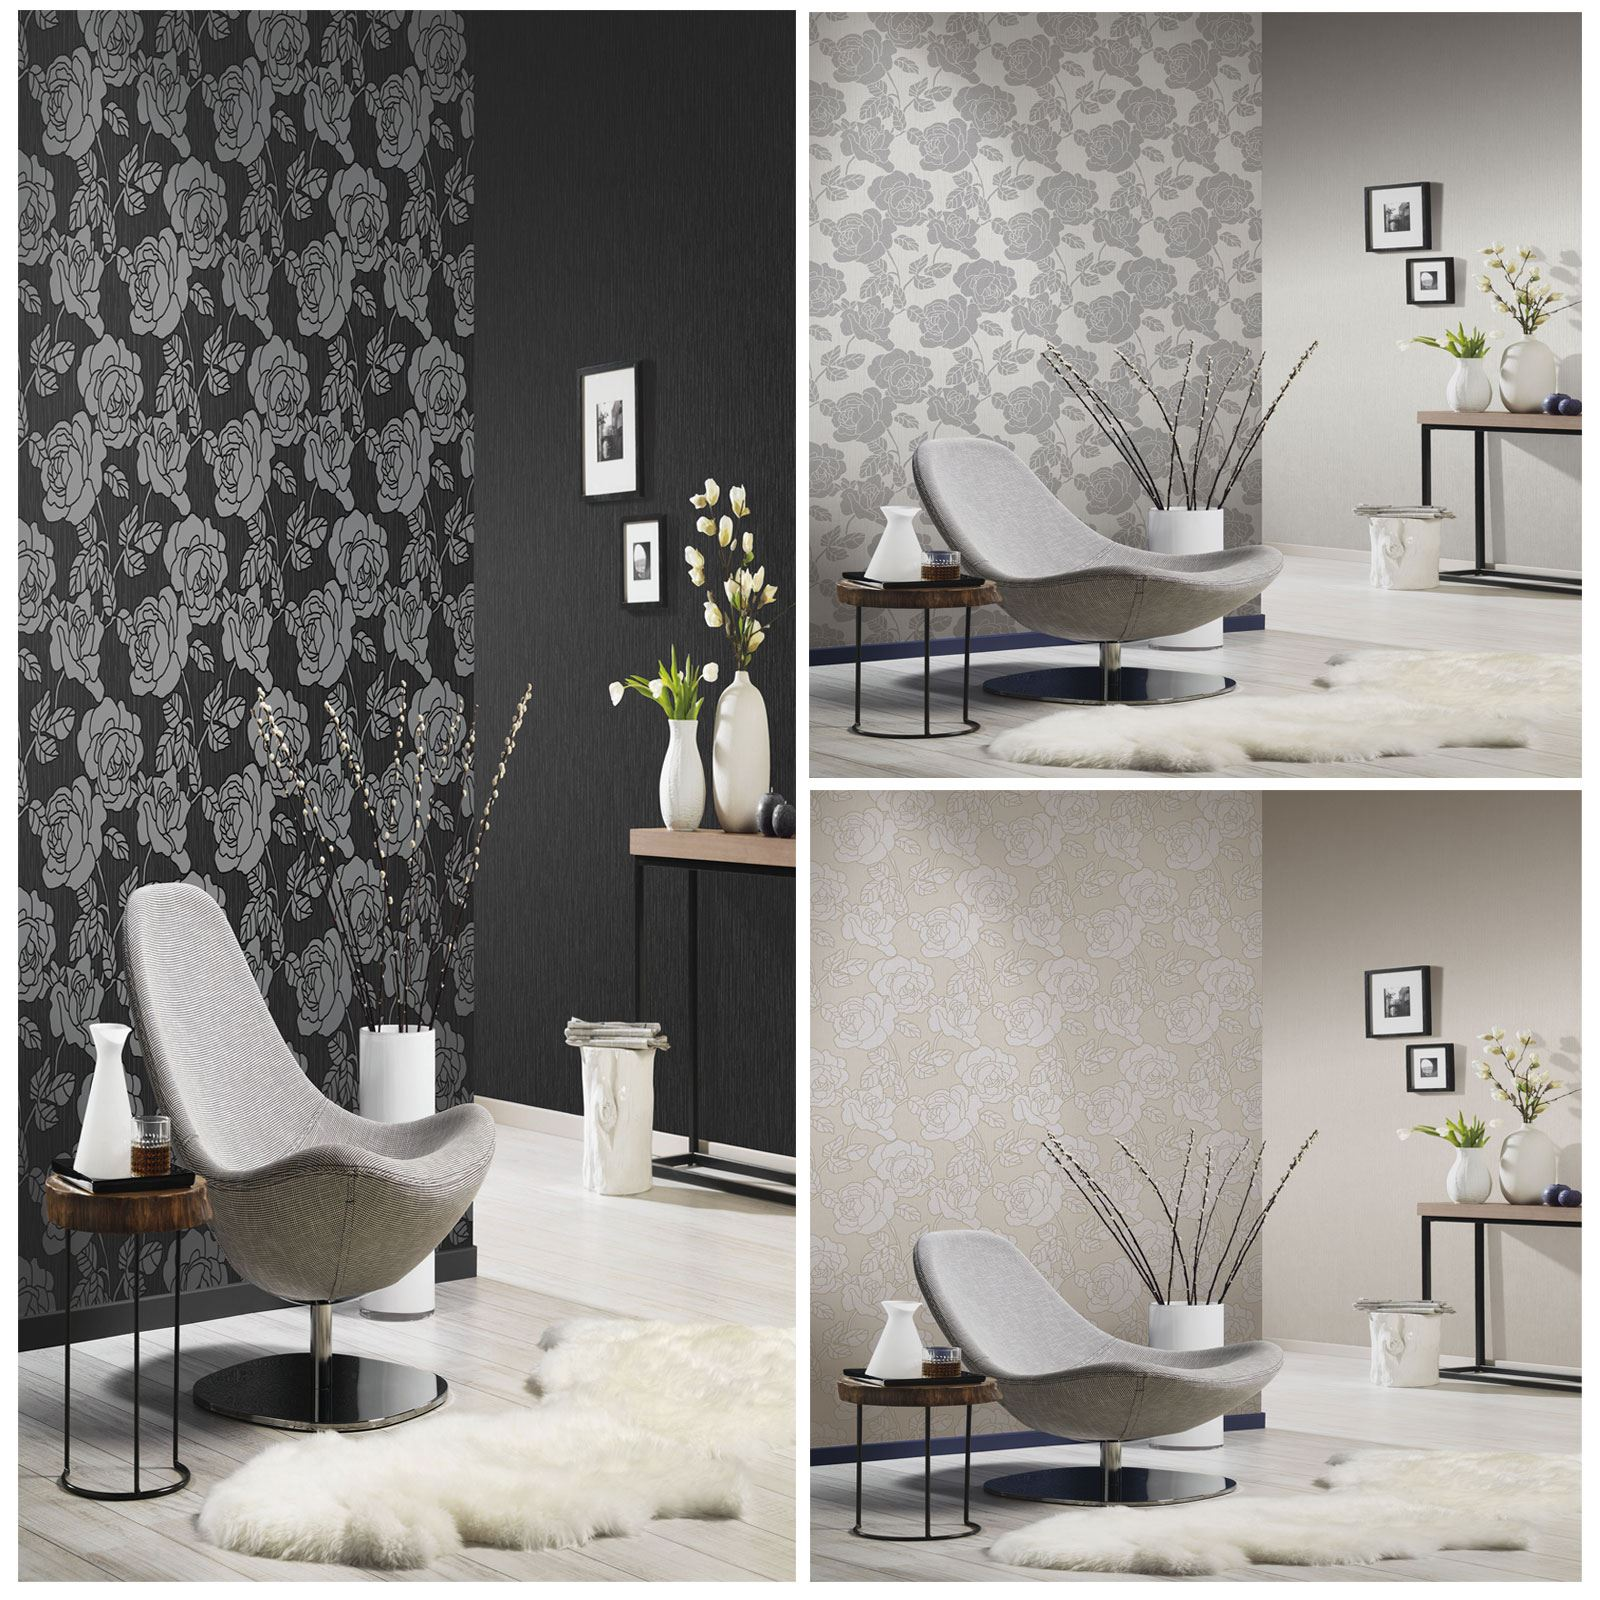 Charmant P+S OPAL FLORAL WALLPAPER WITH GLITTER HIGHLIGHTS BLACK GREY CREAM FEATURE  WALL